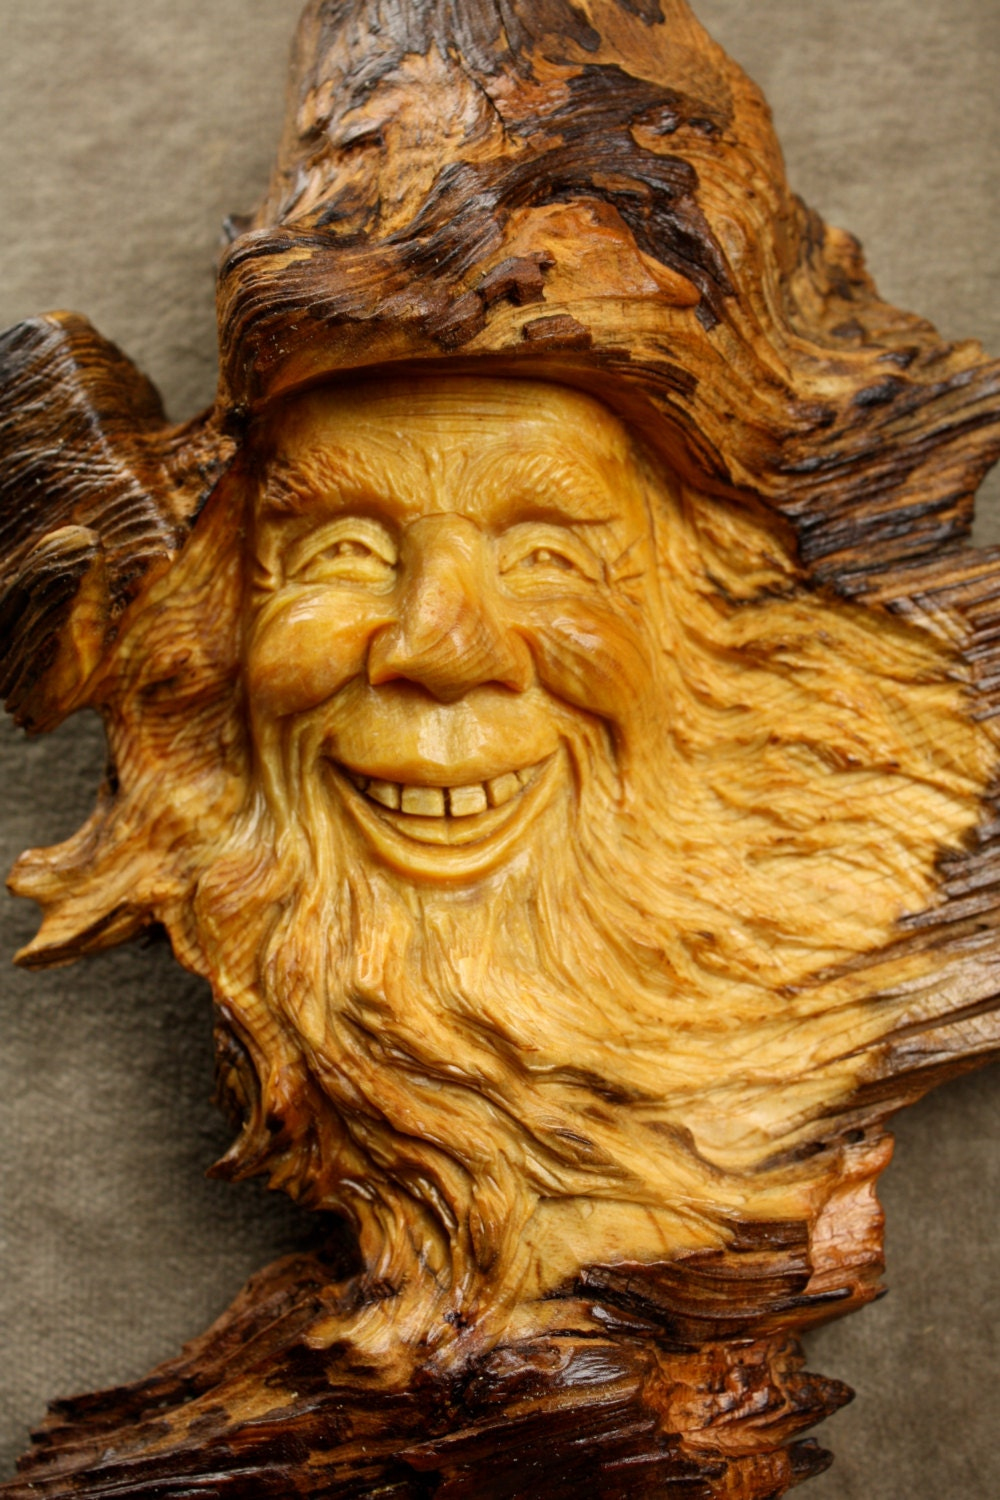 Wood spirit carving art ooak wooden christmas gift birthday